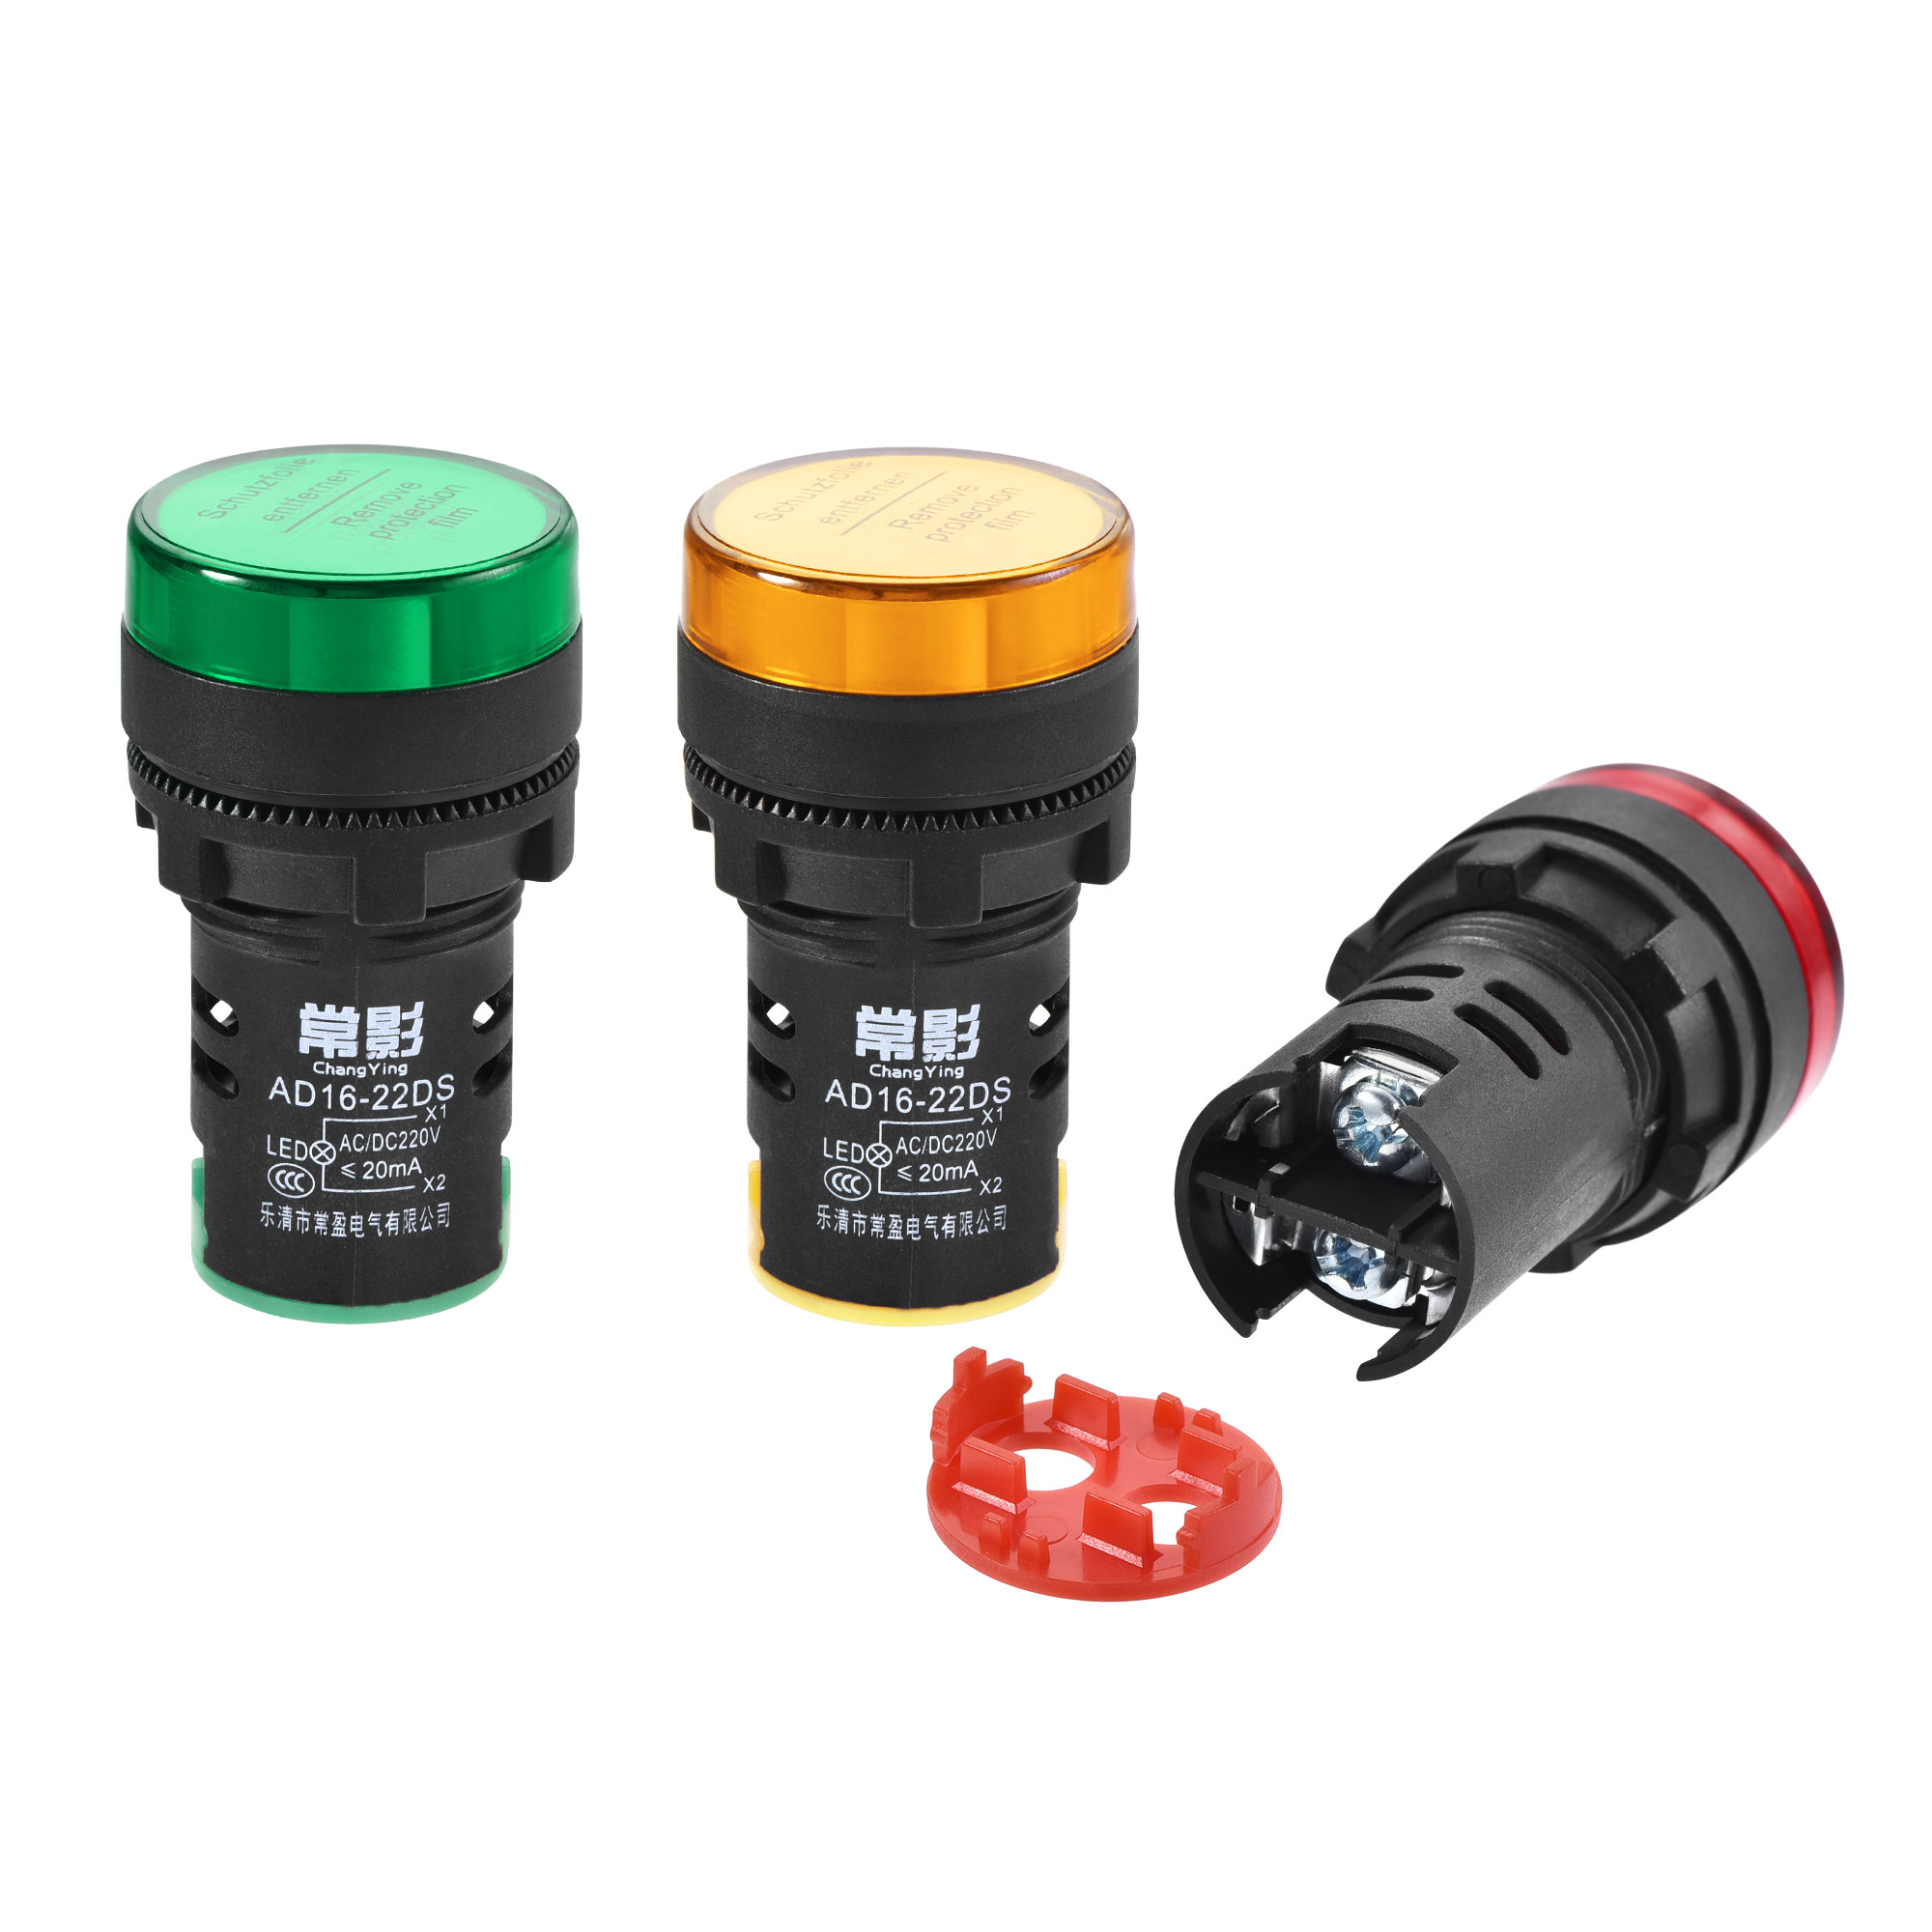 AC/DC 220V Indicator Lights, Dust Cover IP54, Red Green Yellow - 3 Colors, 3Pcs